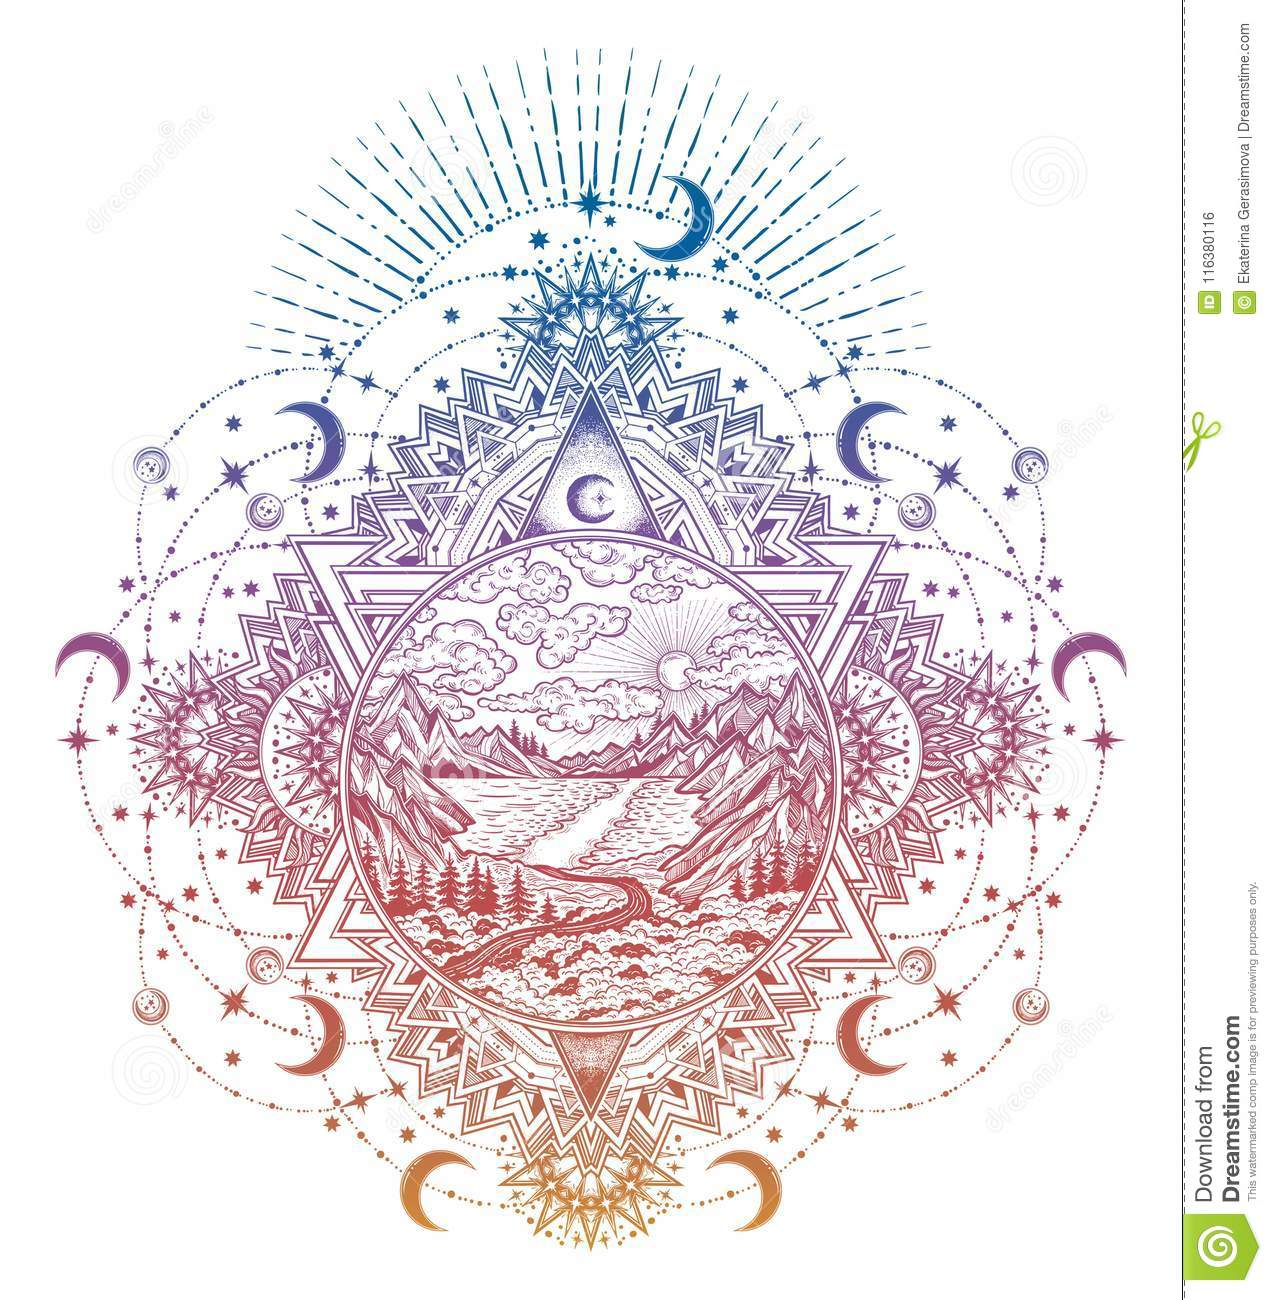 ornate frame tattoo cat decorative ornate frame with round artwork wilderness landscape scene lake road pine forest and mountains vector illustration isolated ornate frame with landscape forest and mountains stock